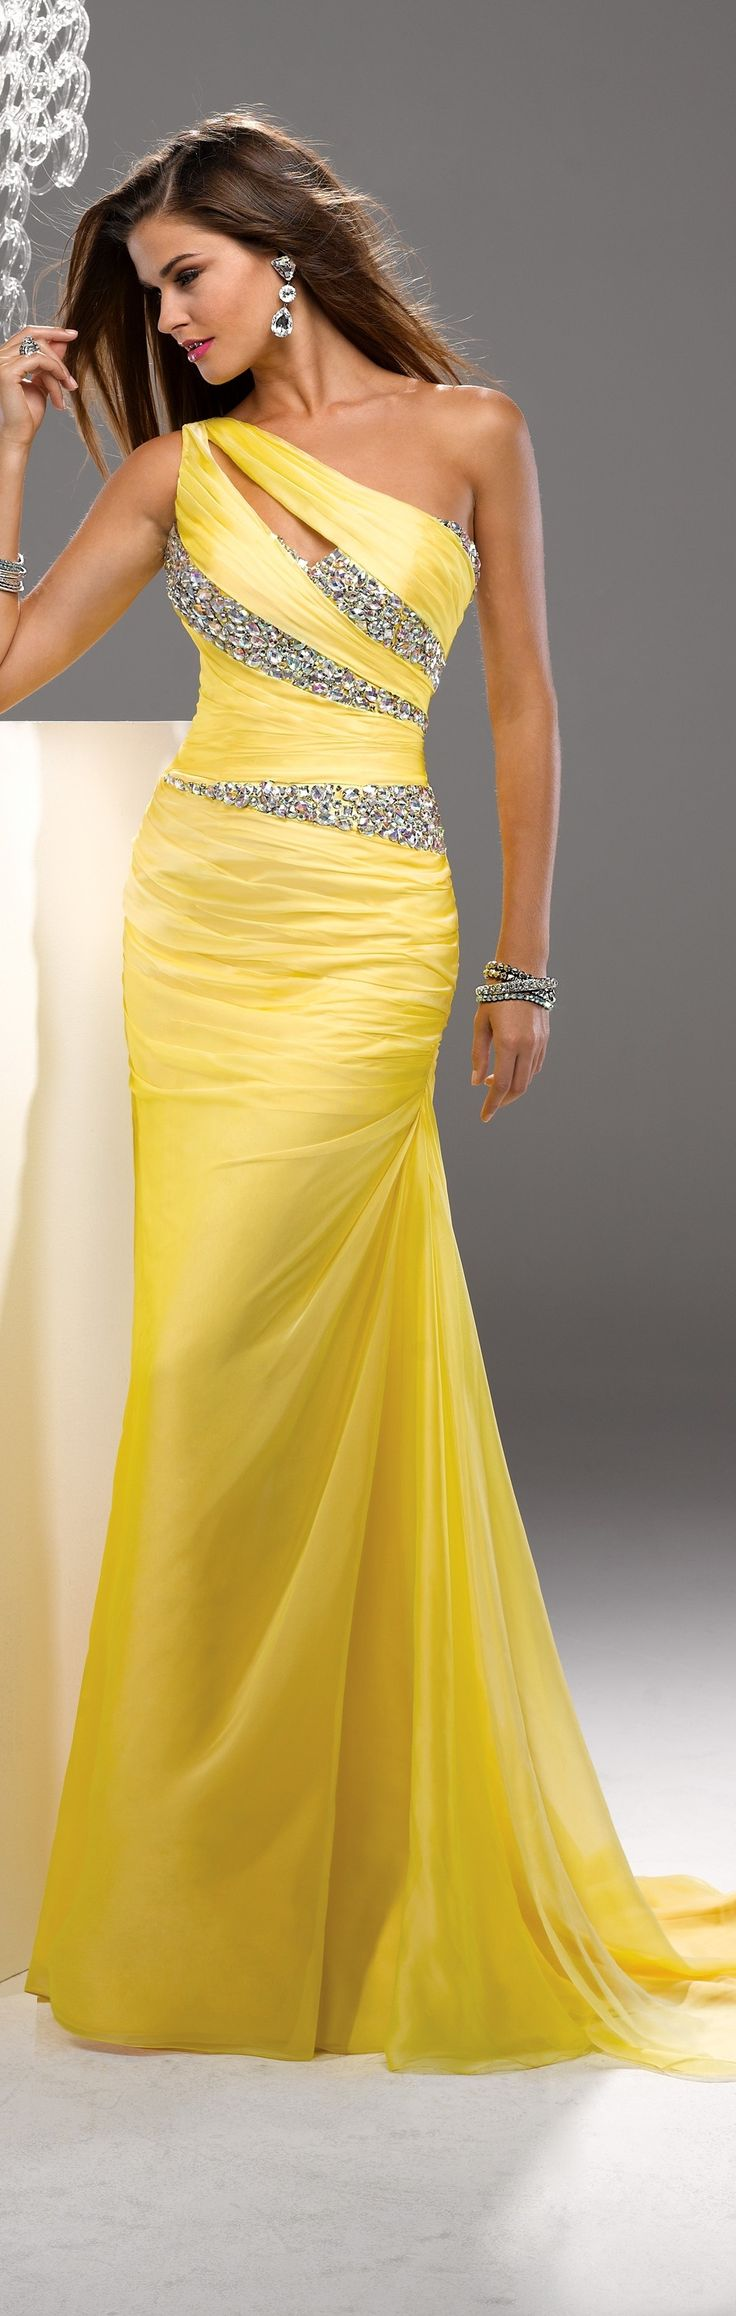 Flirt high couture, This is a beautiful gown although not everyone can wear yellow very well.